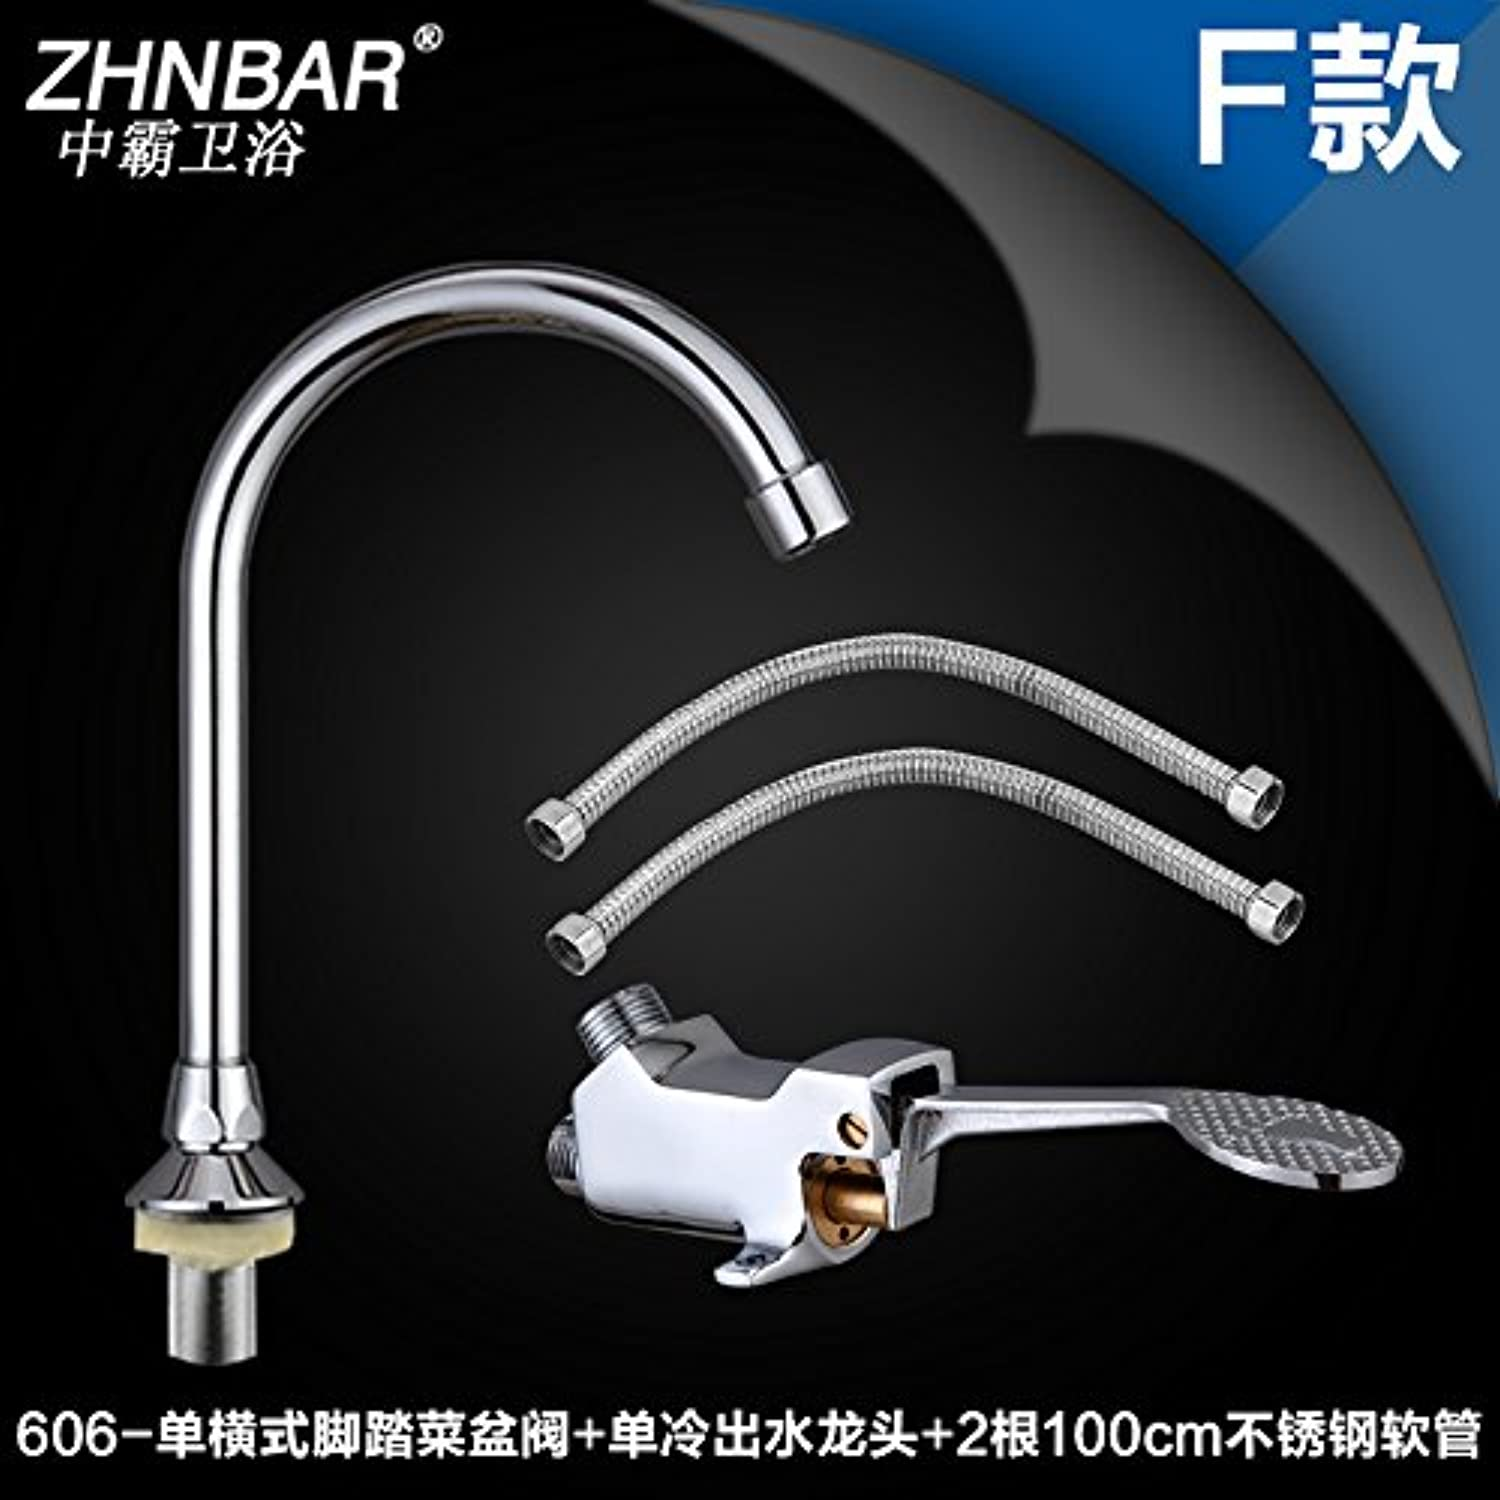 Hlluya Professional Sink Mixer Tap Kitchen Faucet All copper hospital Foot Pedal Valve Foot dish basin single cold kitchen faucet lab foot basin faucet,F